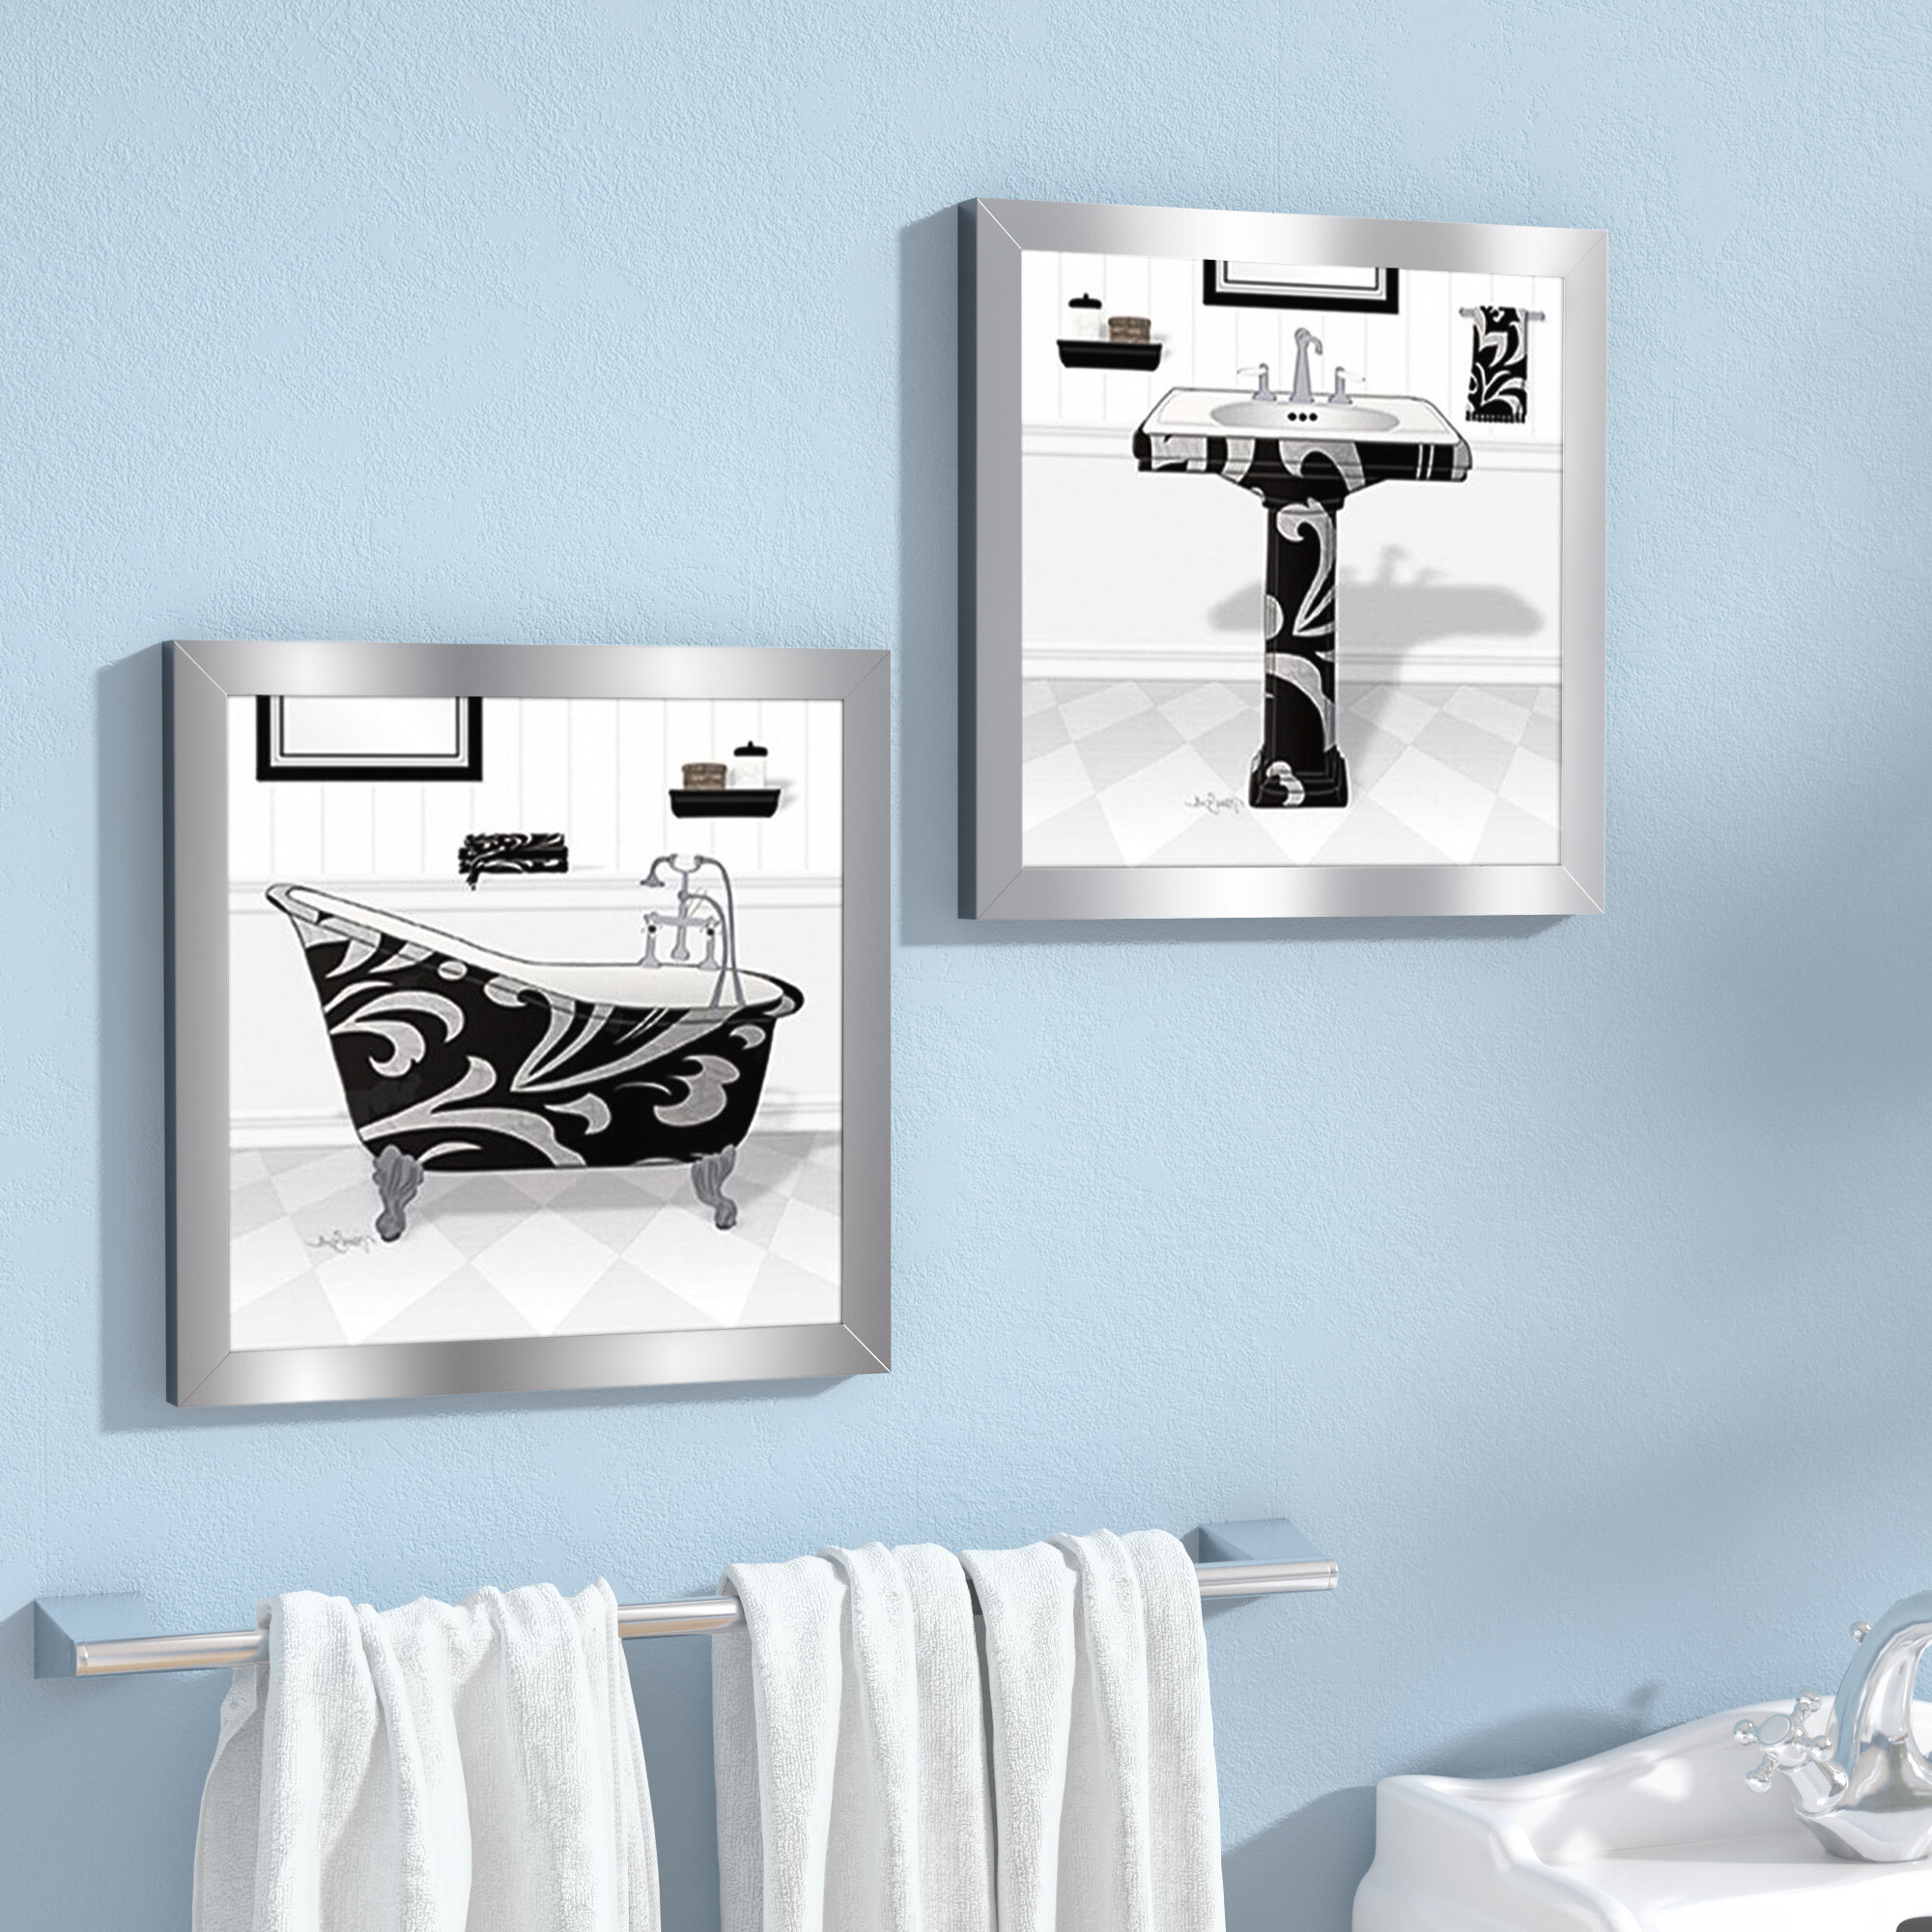 """Newest 6"""" Chrome Poop Deck Sign Wall Décor Inside 'black Damask Tub' 2 Piece Framed Acrylic Painting Print Set Under Glass (View 15 of 17)"""